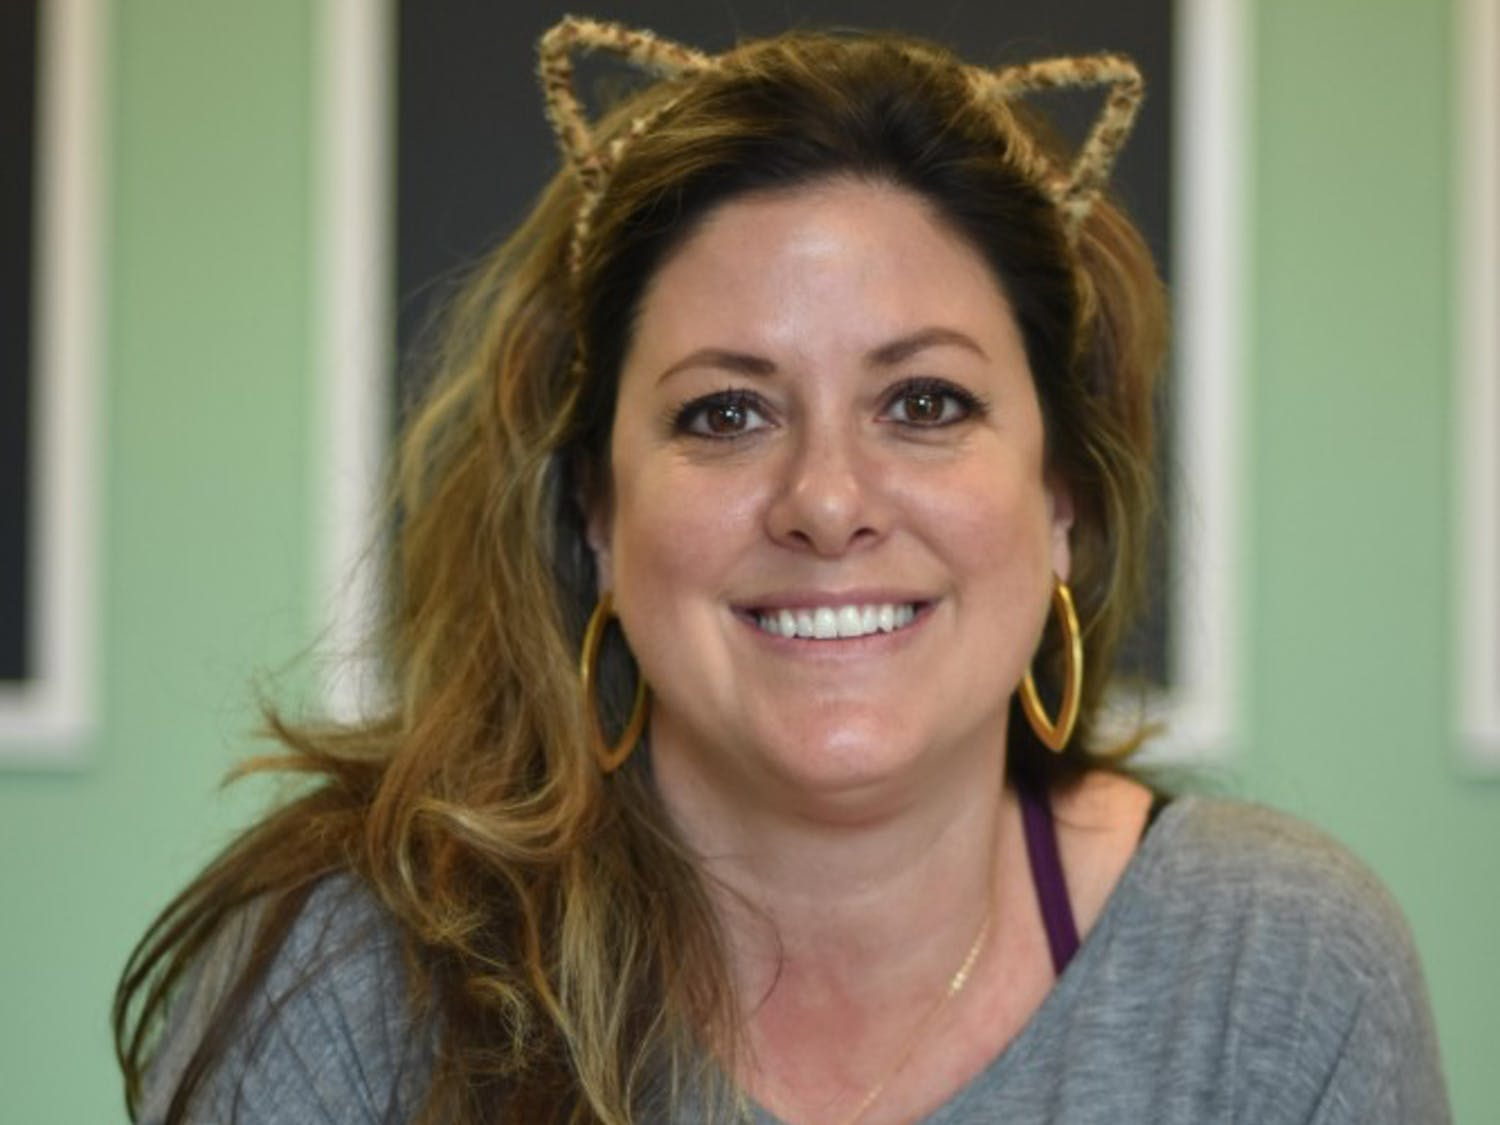 Katy Poitras is one of the managers of Cat Tales Cat Cafe, a low stress place for adoptable cats and cat lovers to meet and socialize.